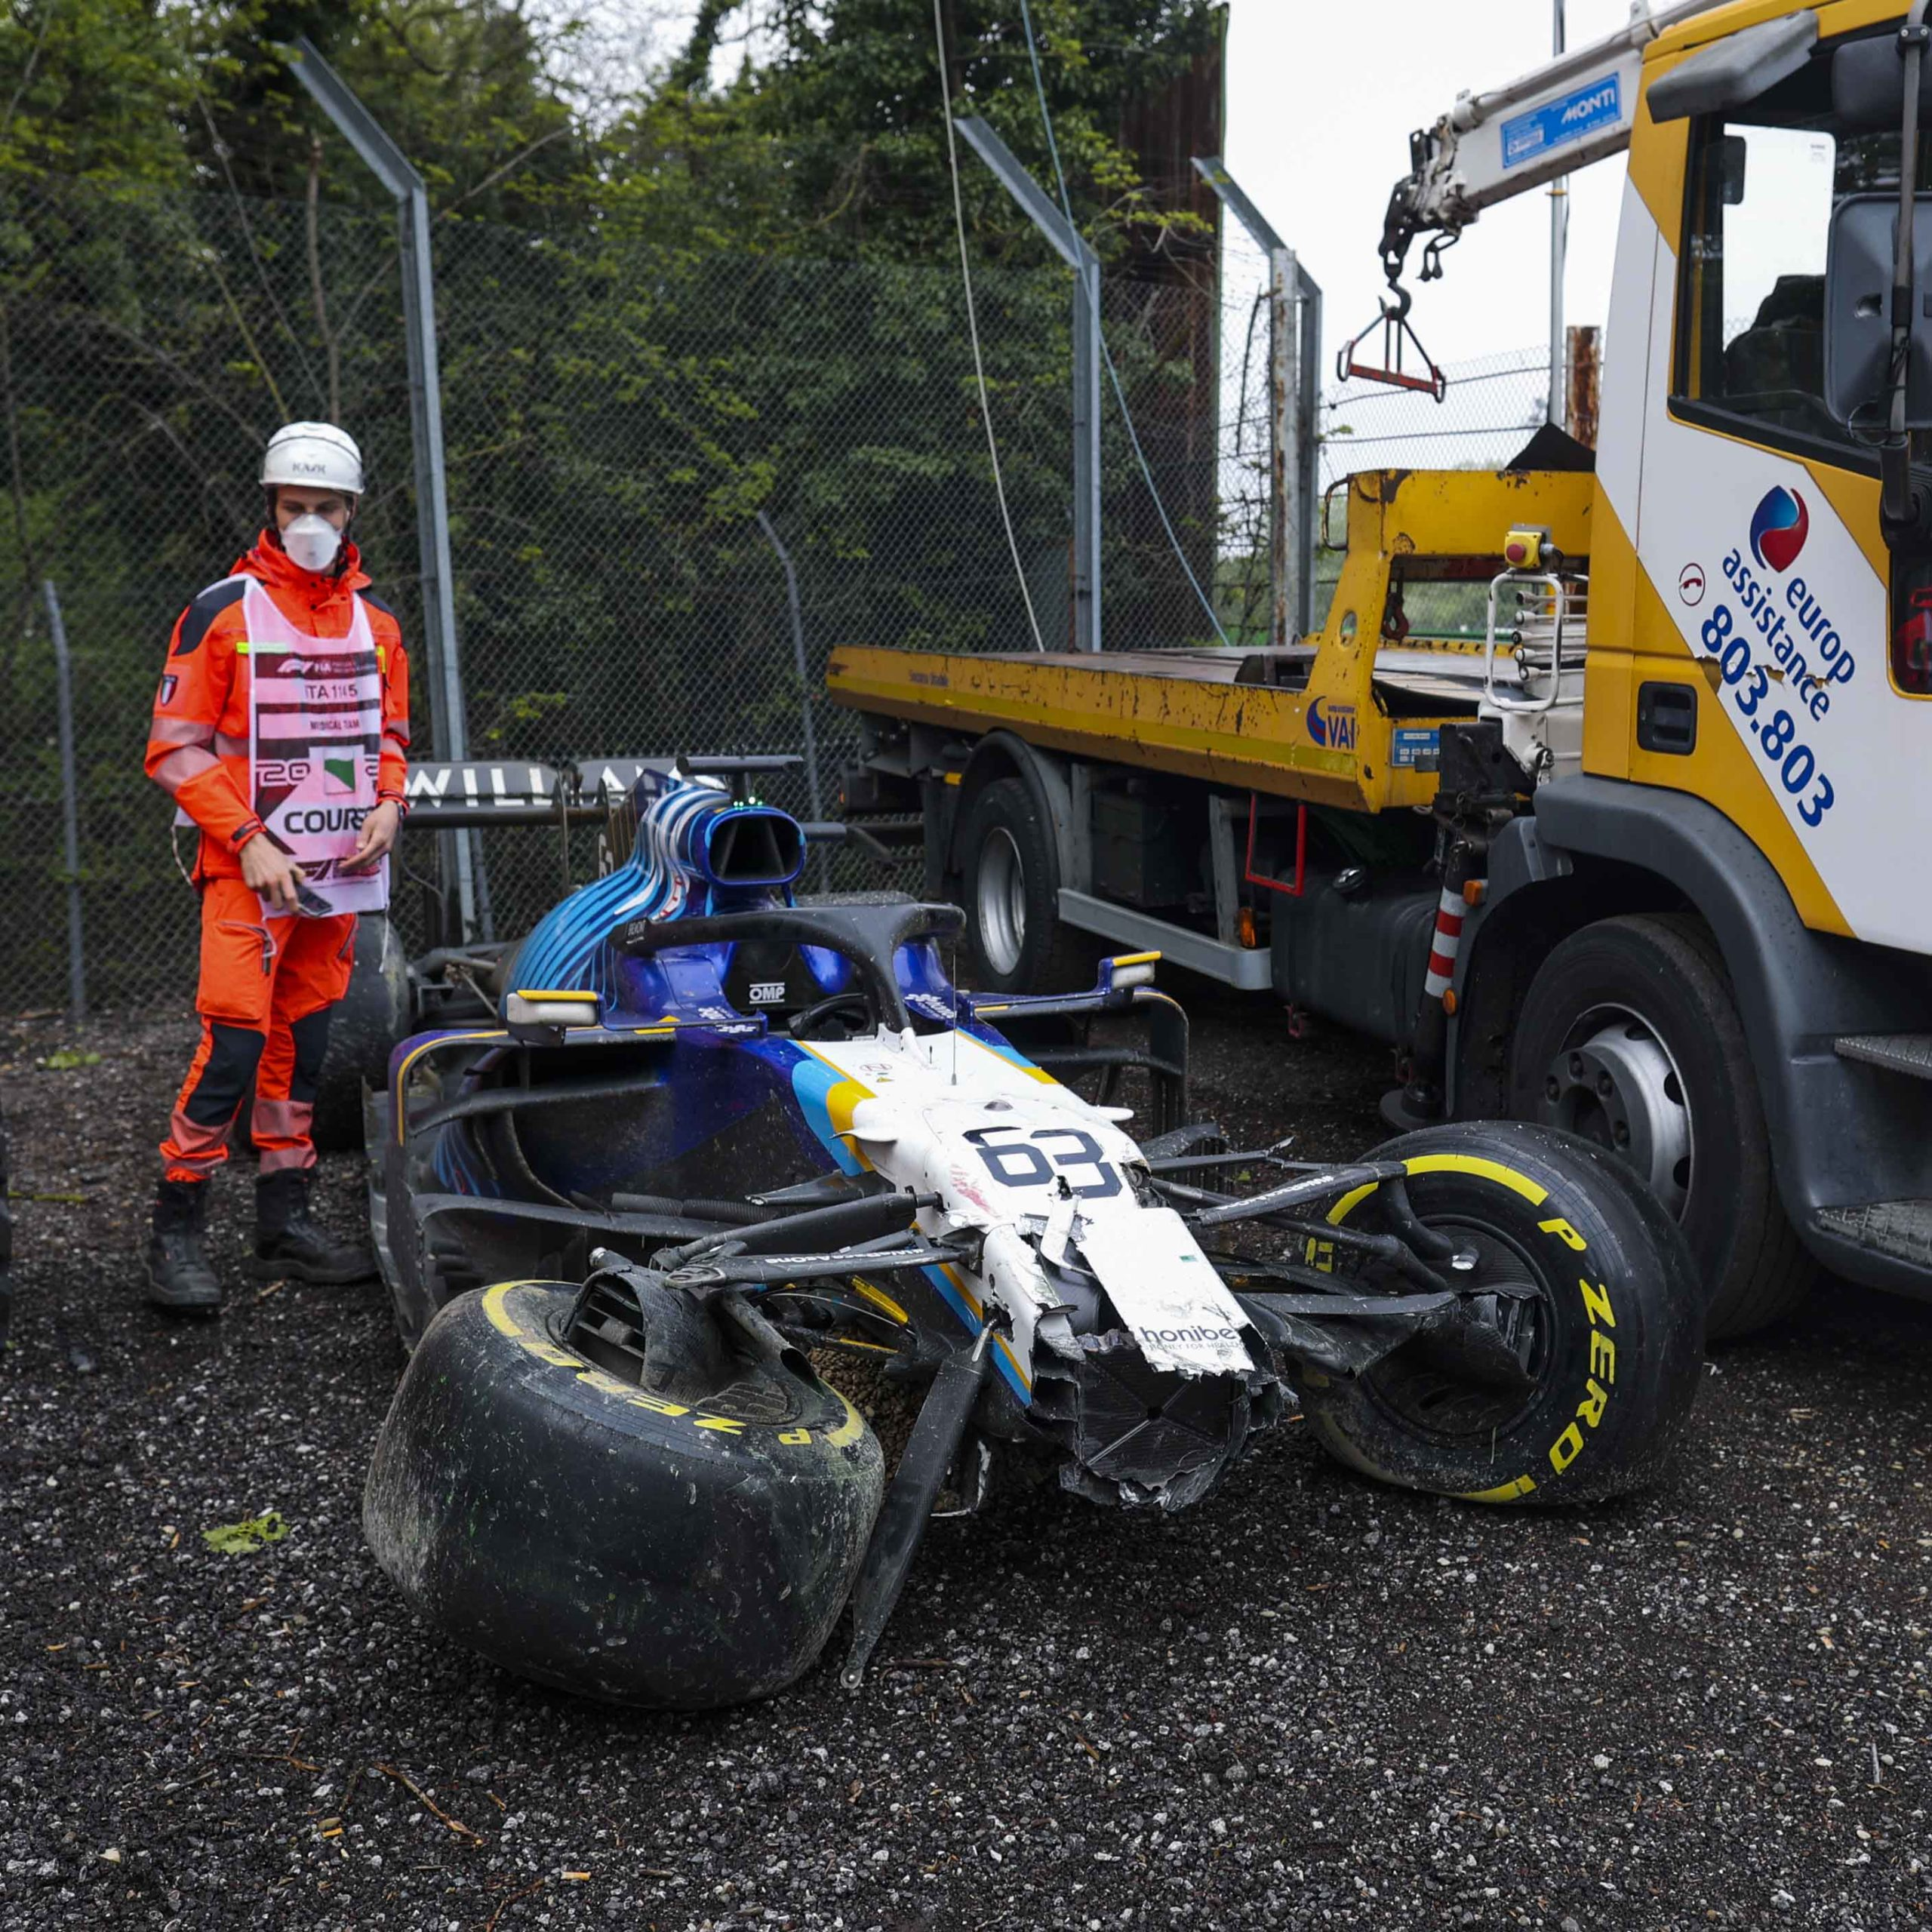 Williams of George Russell after crashing out of the 2021 Emilia Romagna Grand Prix